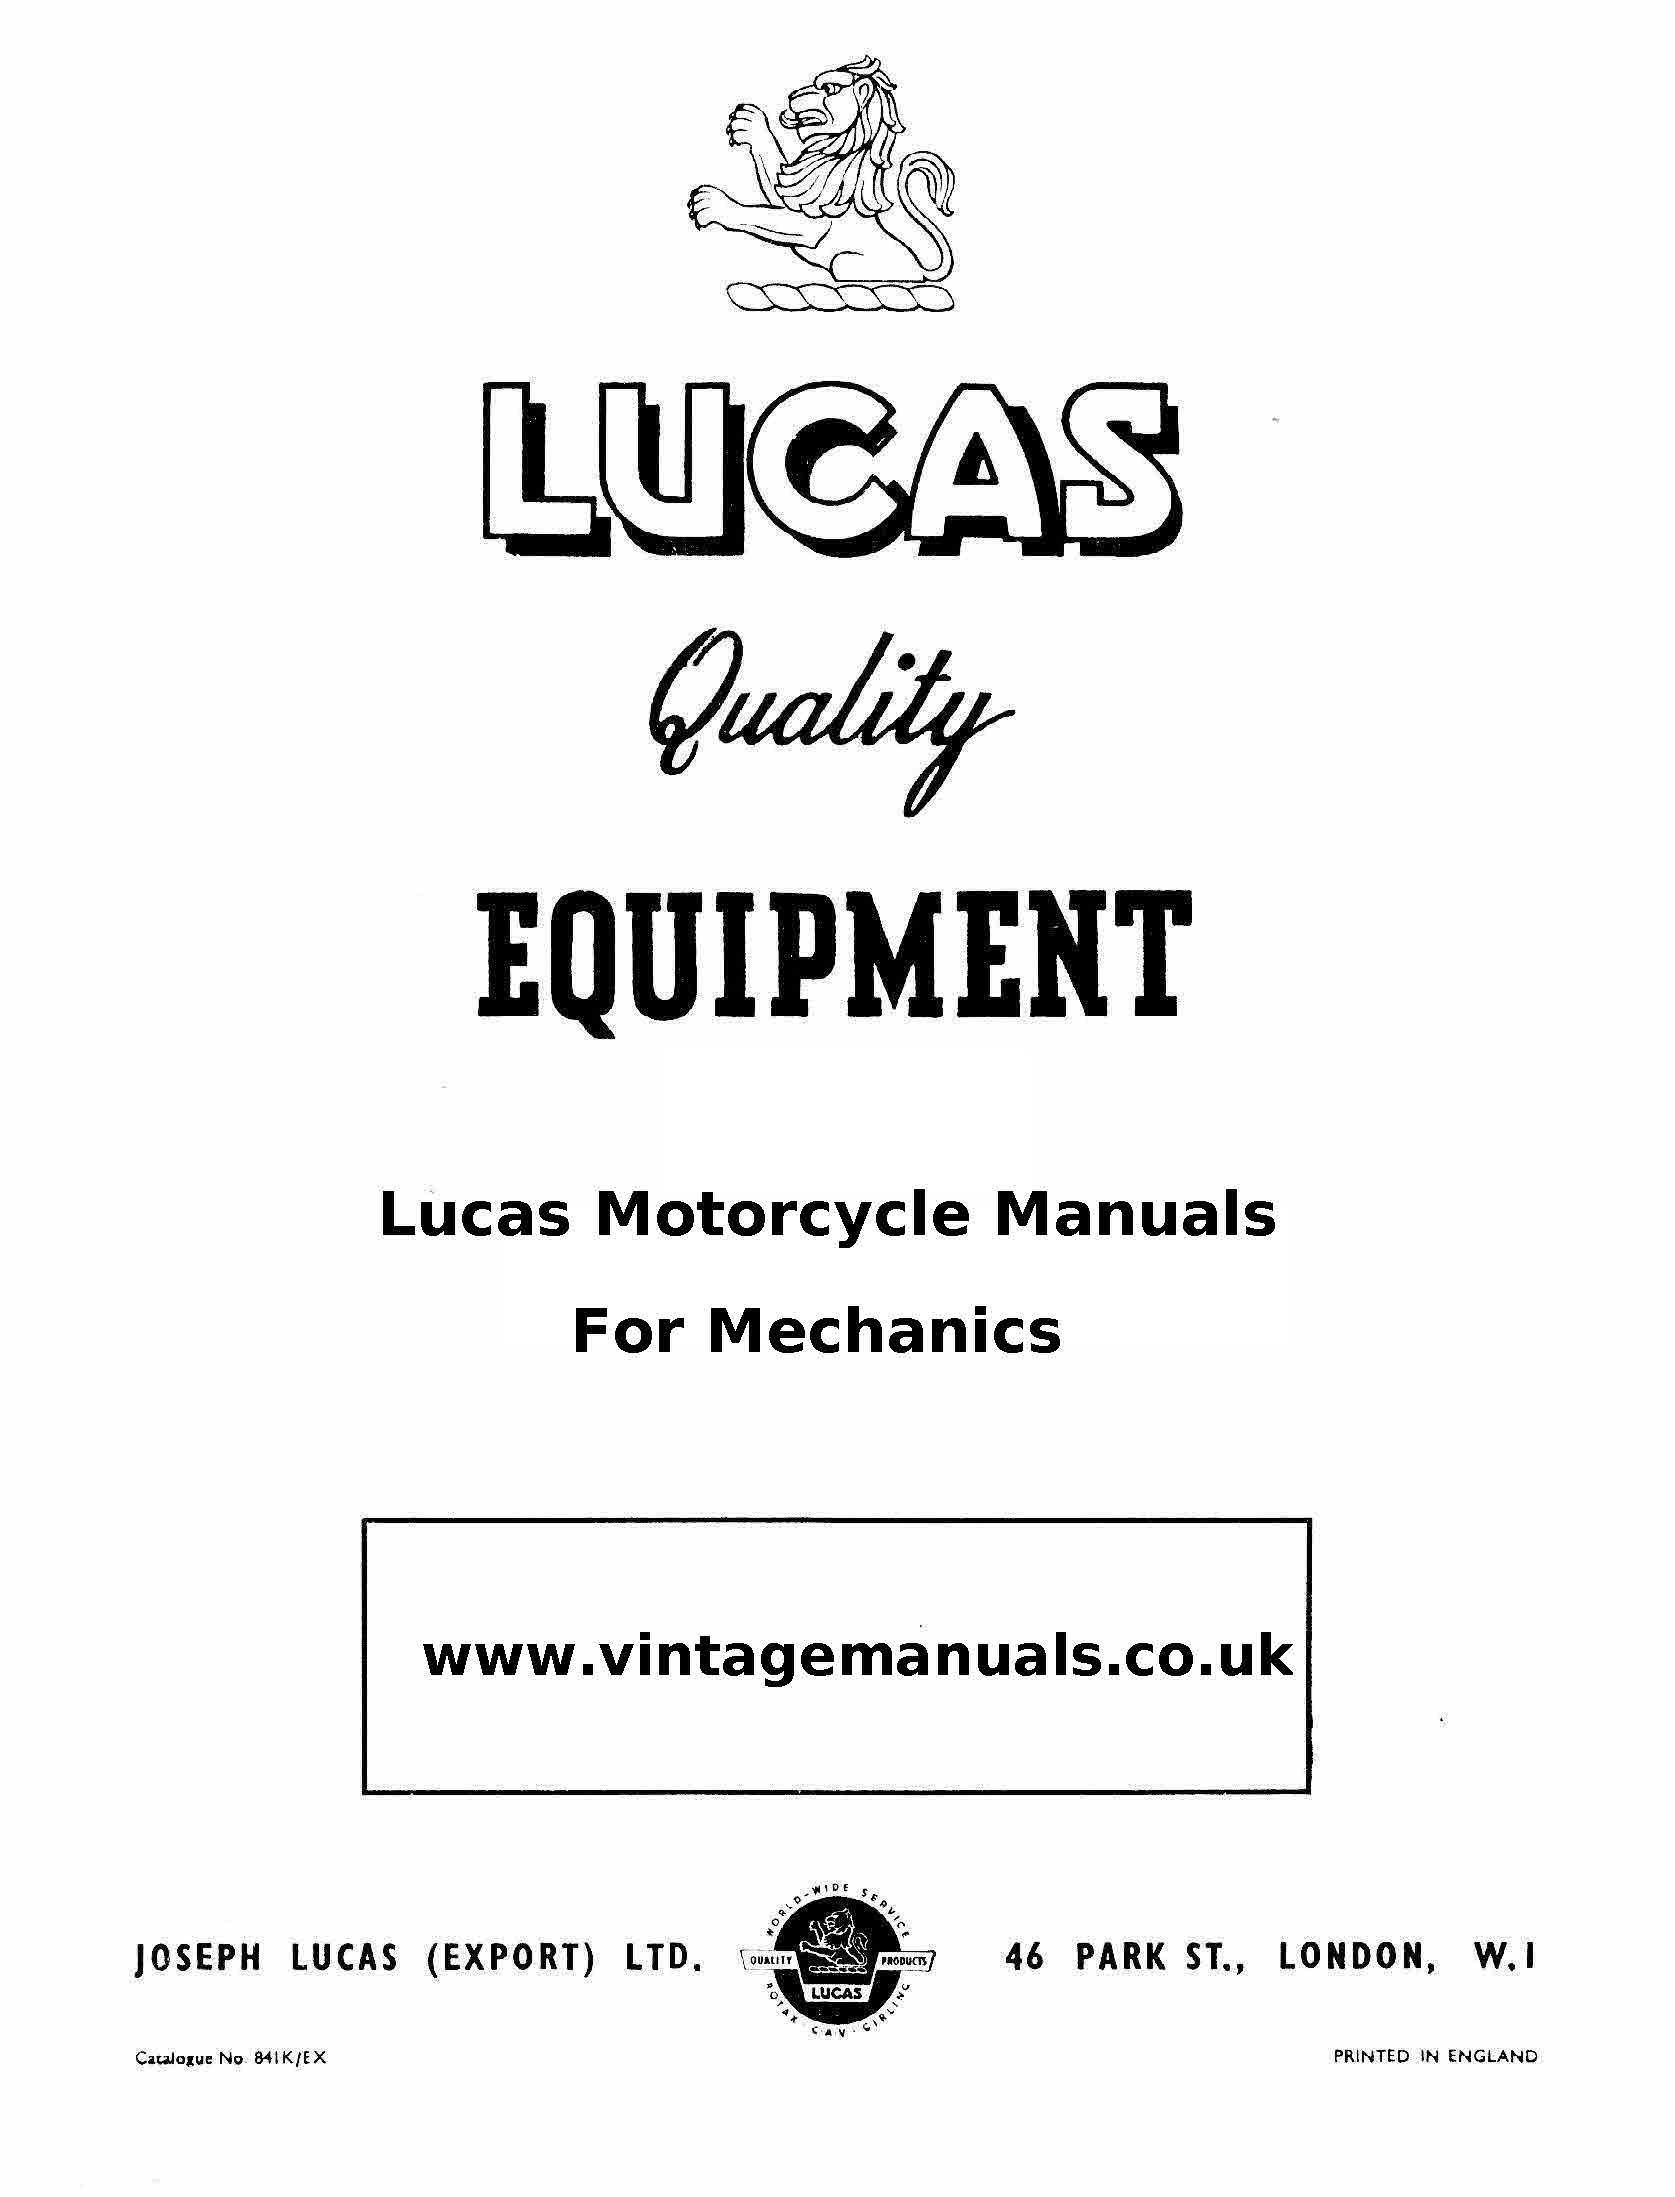 Lucas Electrical Motorcycle manuals for mechanics Good collection of  Vintage…